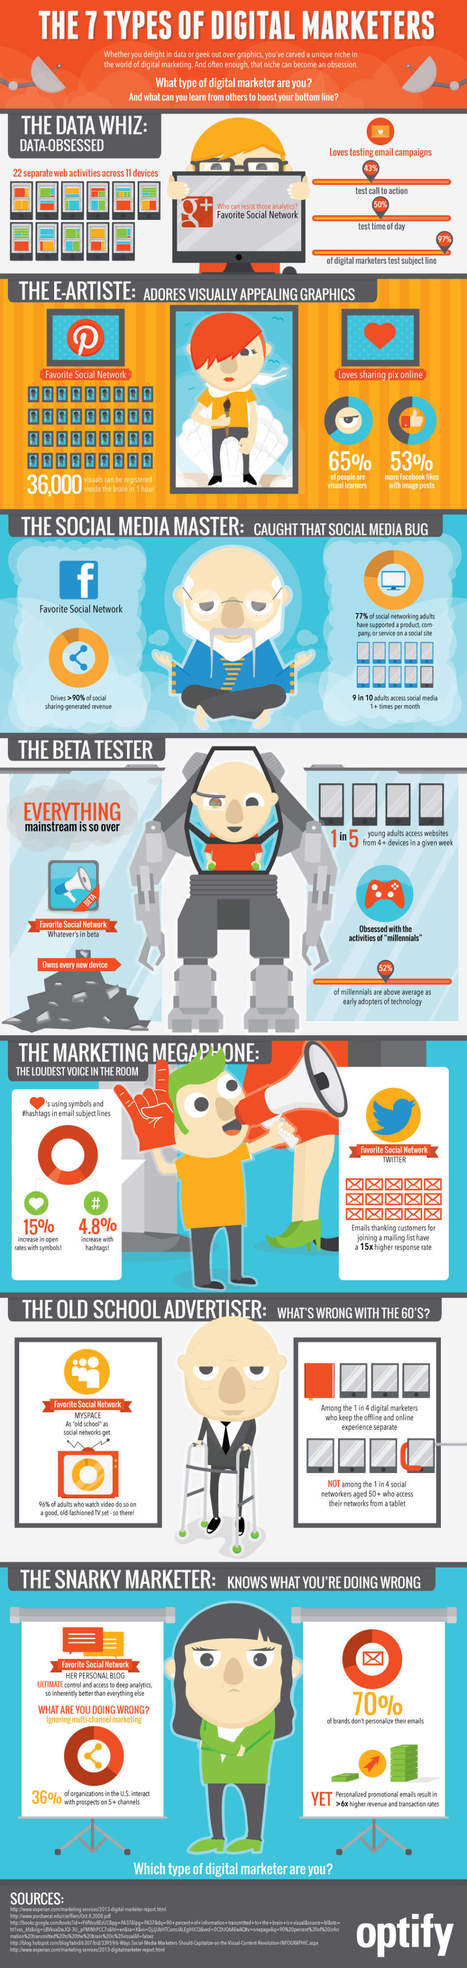 The 7 Breeds Of Digital Marketers [INFOGRAPHIC] | Digital Marketing, Social Media, and eCommerce | Scoop.it